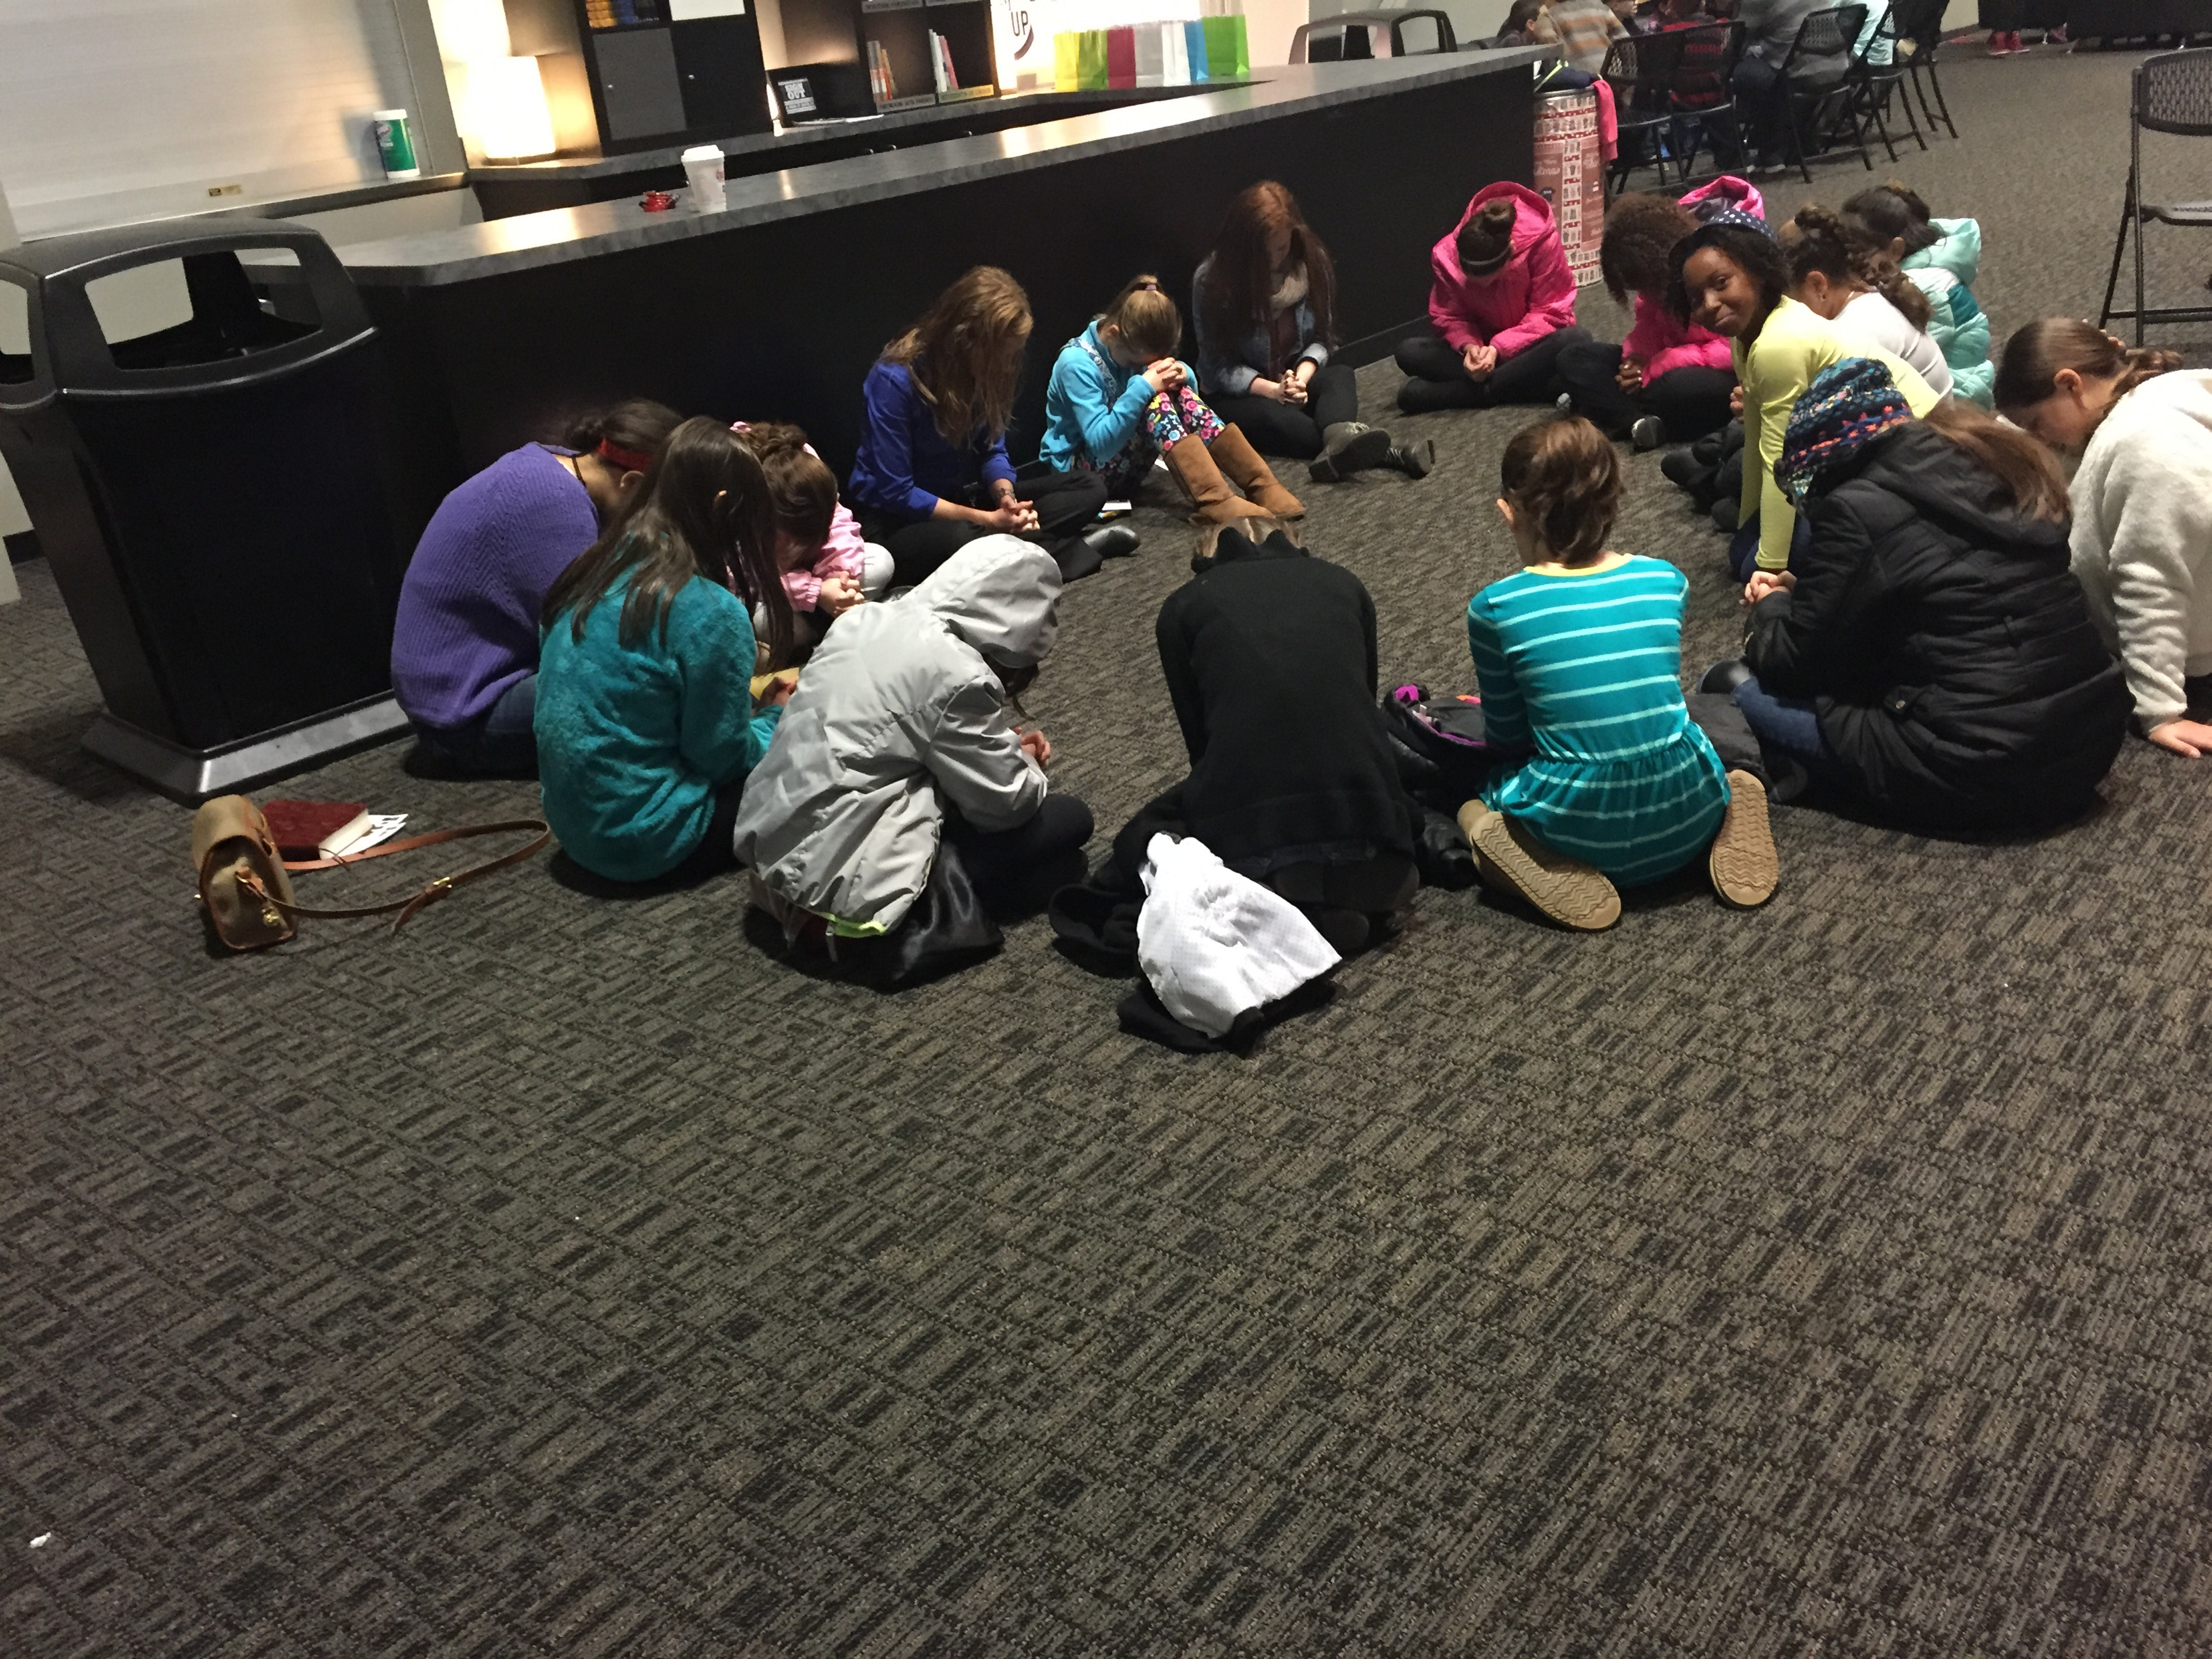 Raquelle Raugh leads a small group of fifth grade girls in SHINE, the middle school ministry at The Chapel.